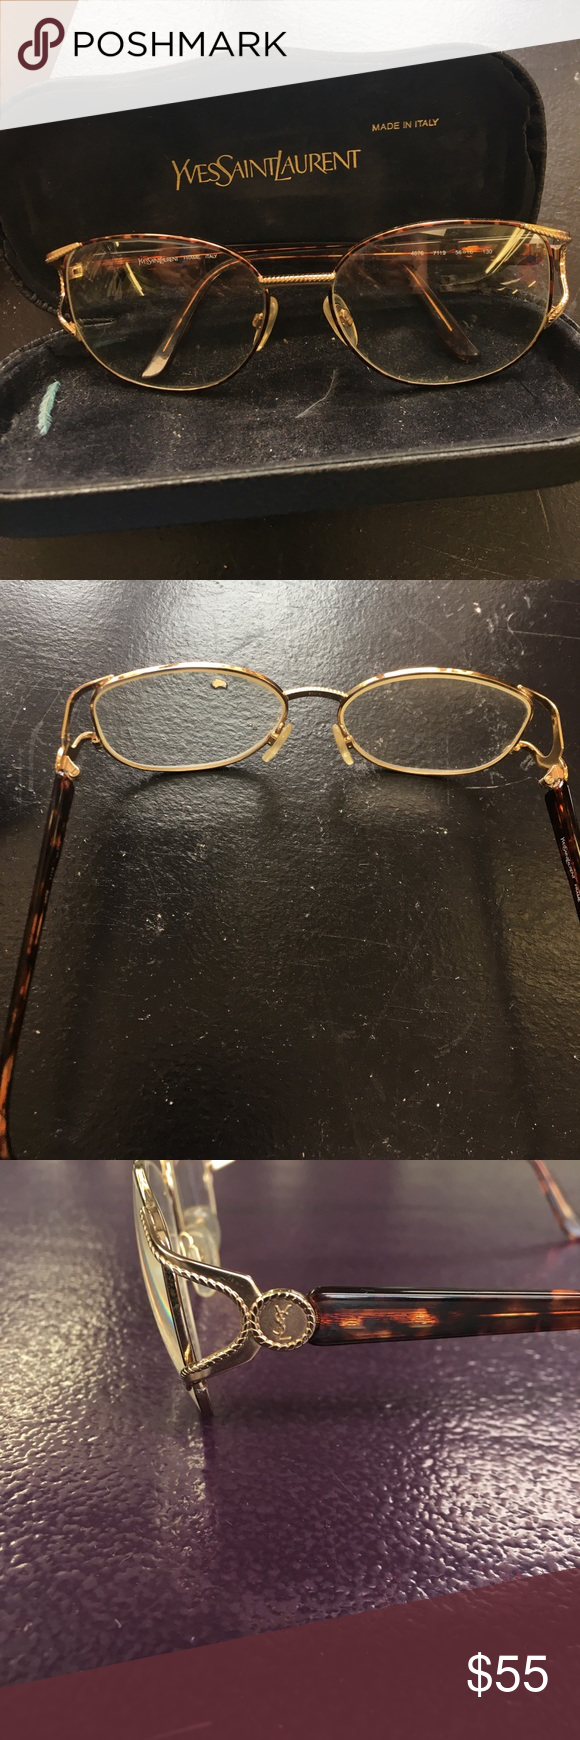 YSL vintage glasses and case These gold metal and tortoise